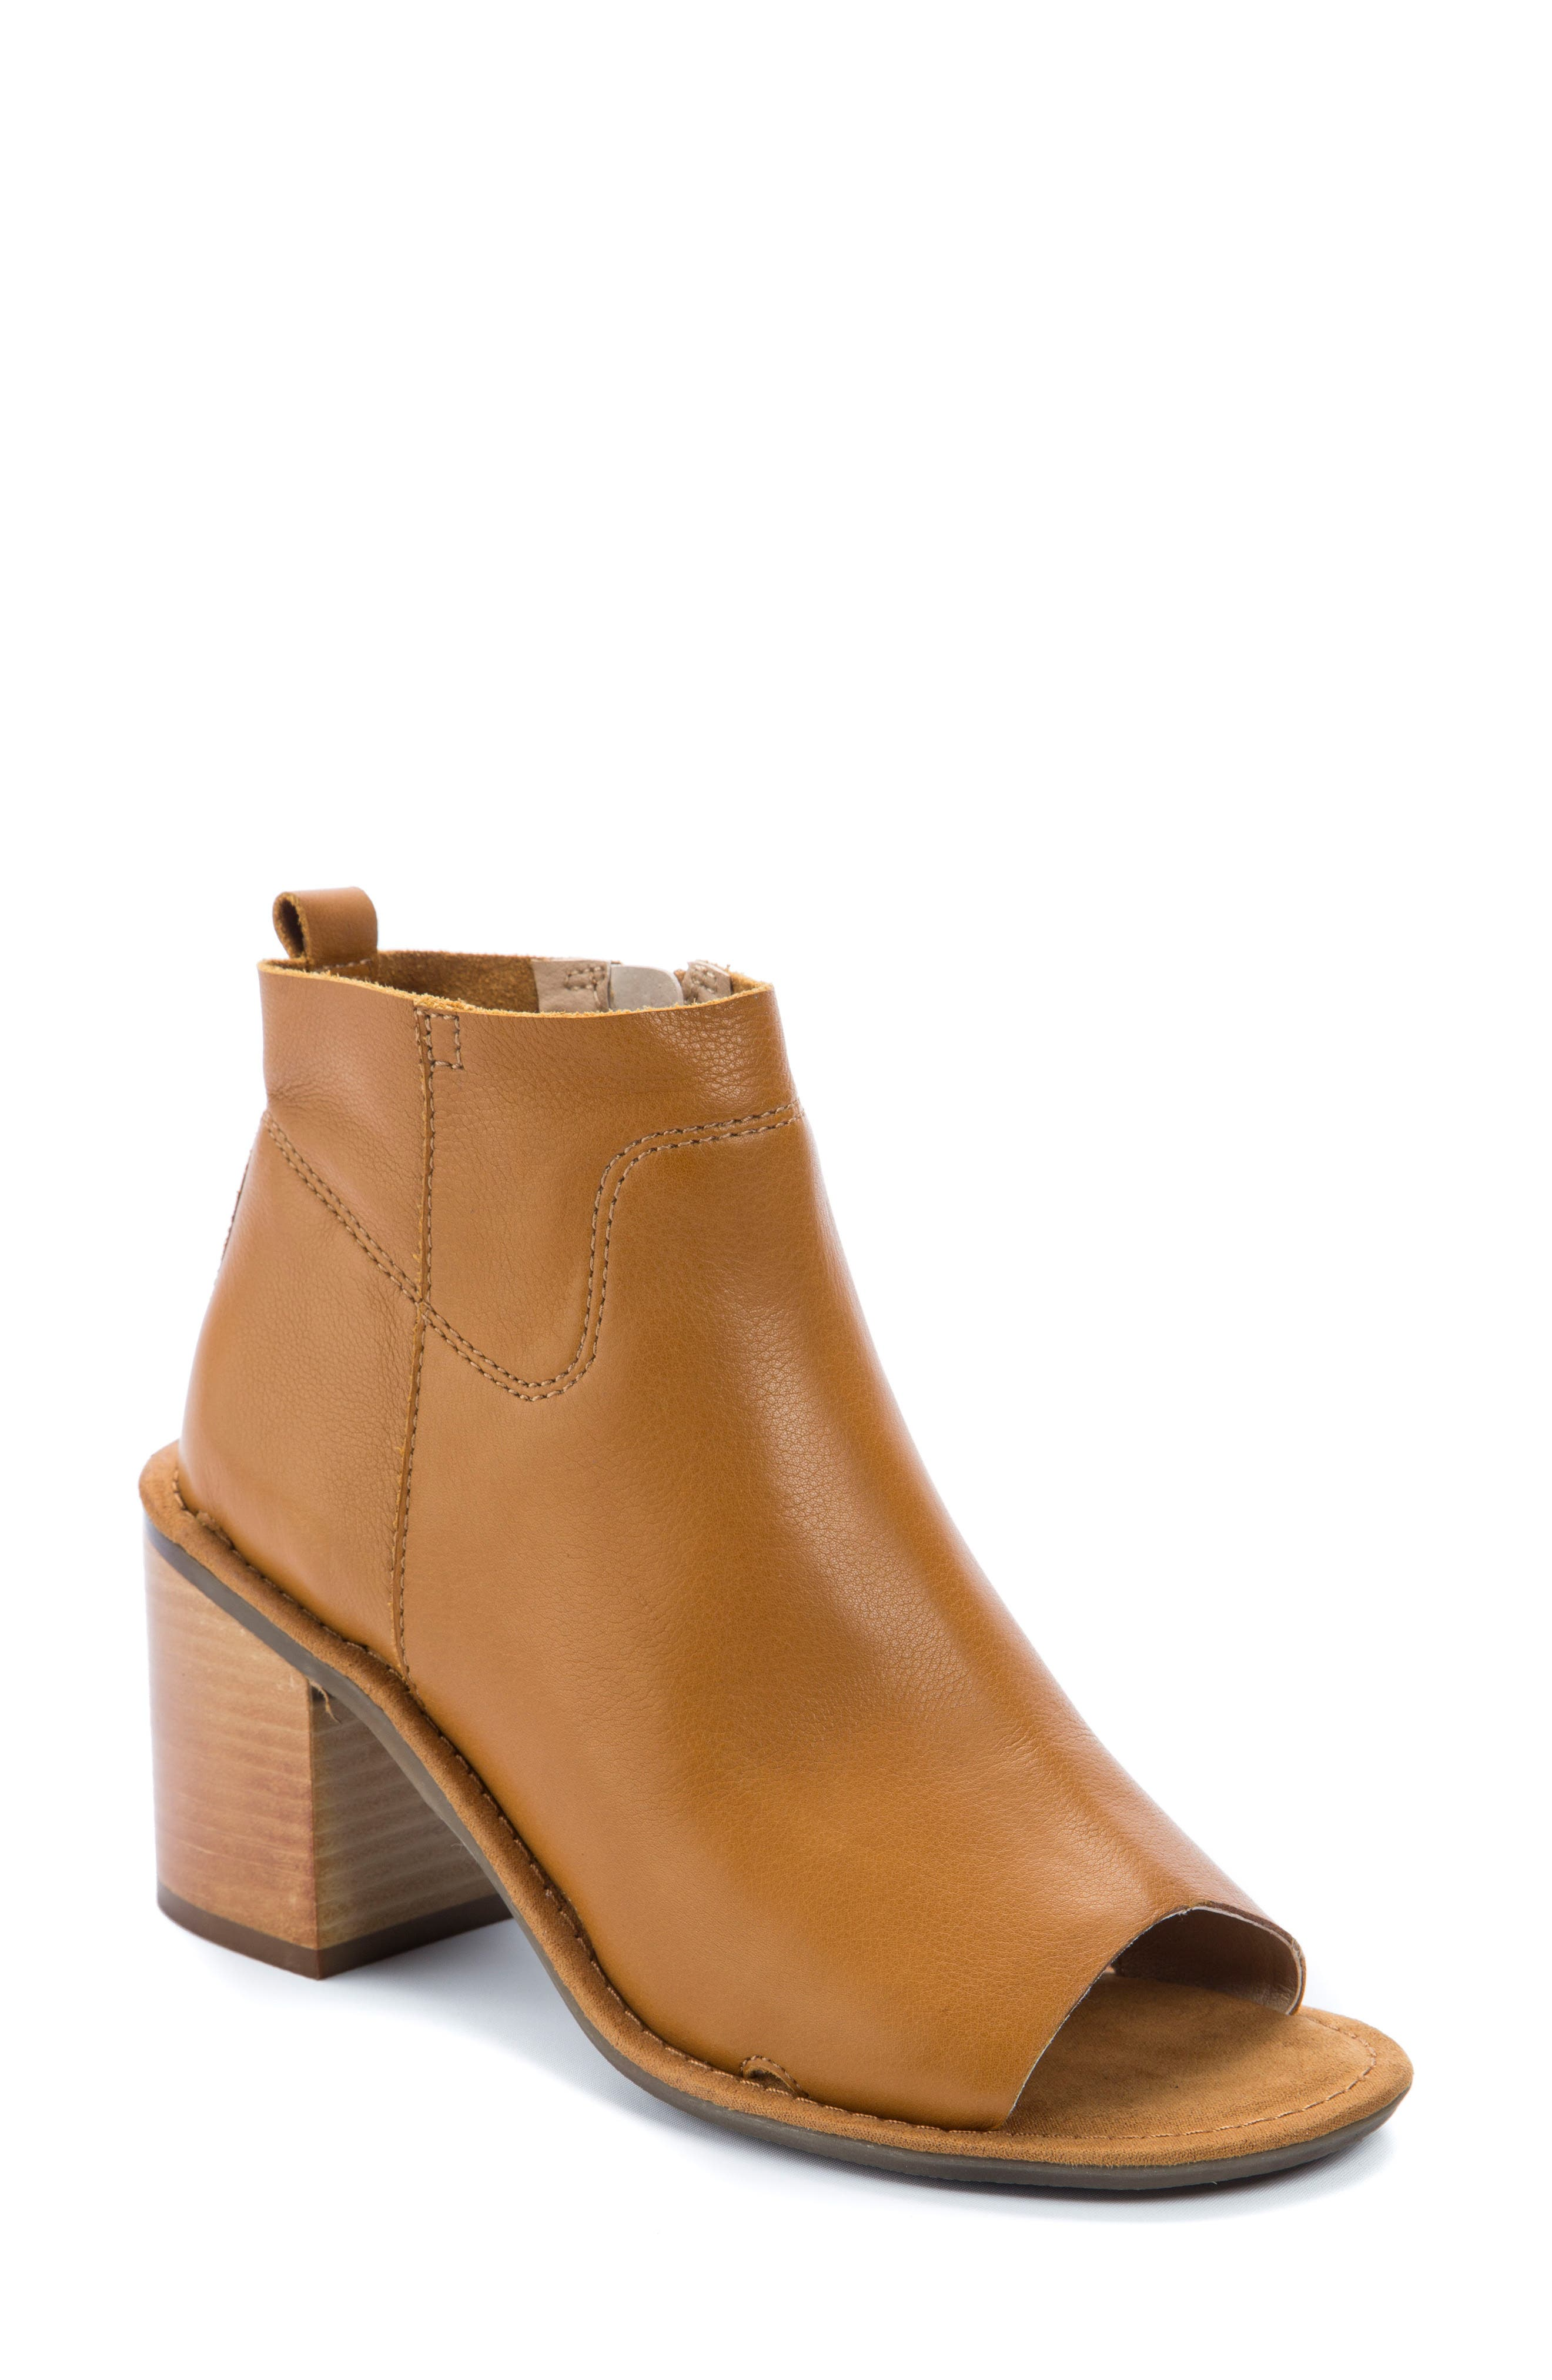 Vivvy Peep Toe Bootie,                         Main,                         color, Amber